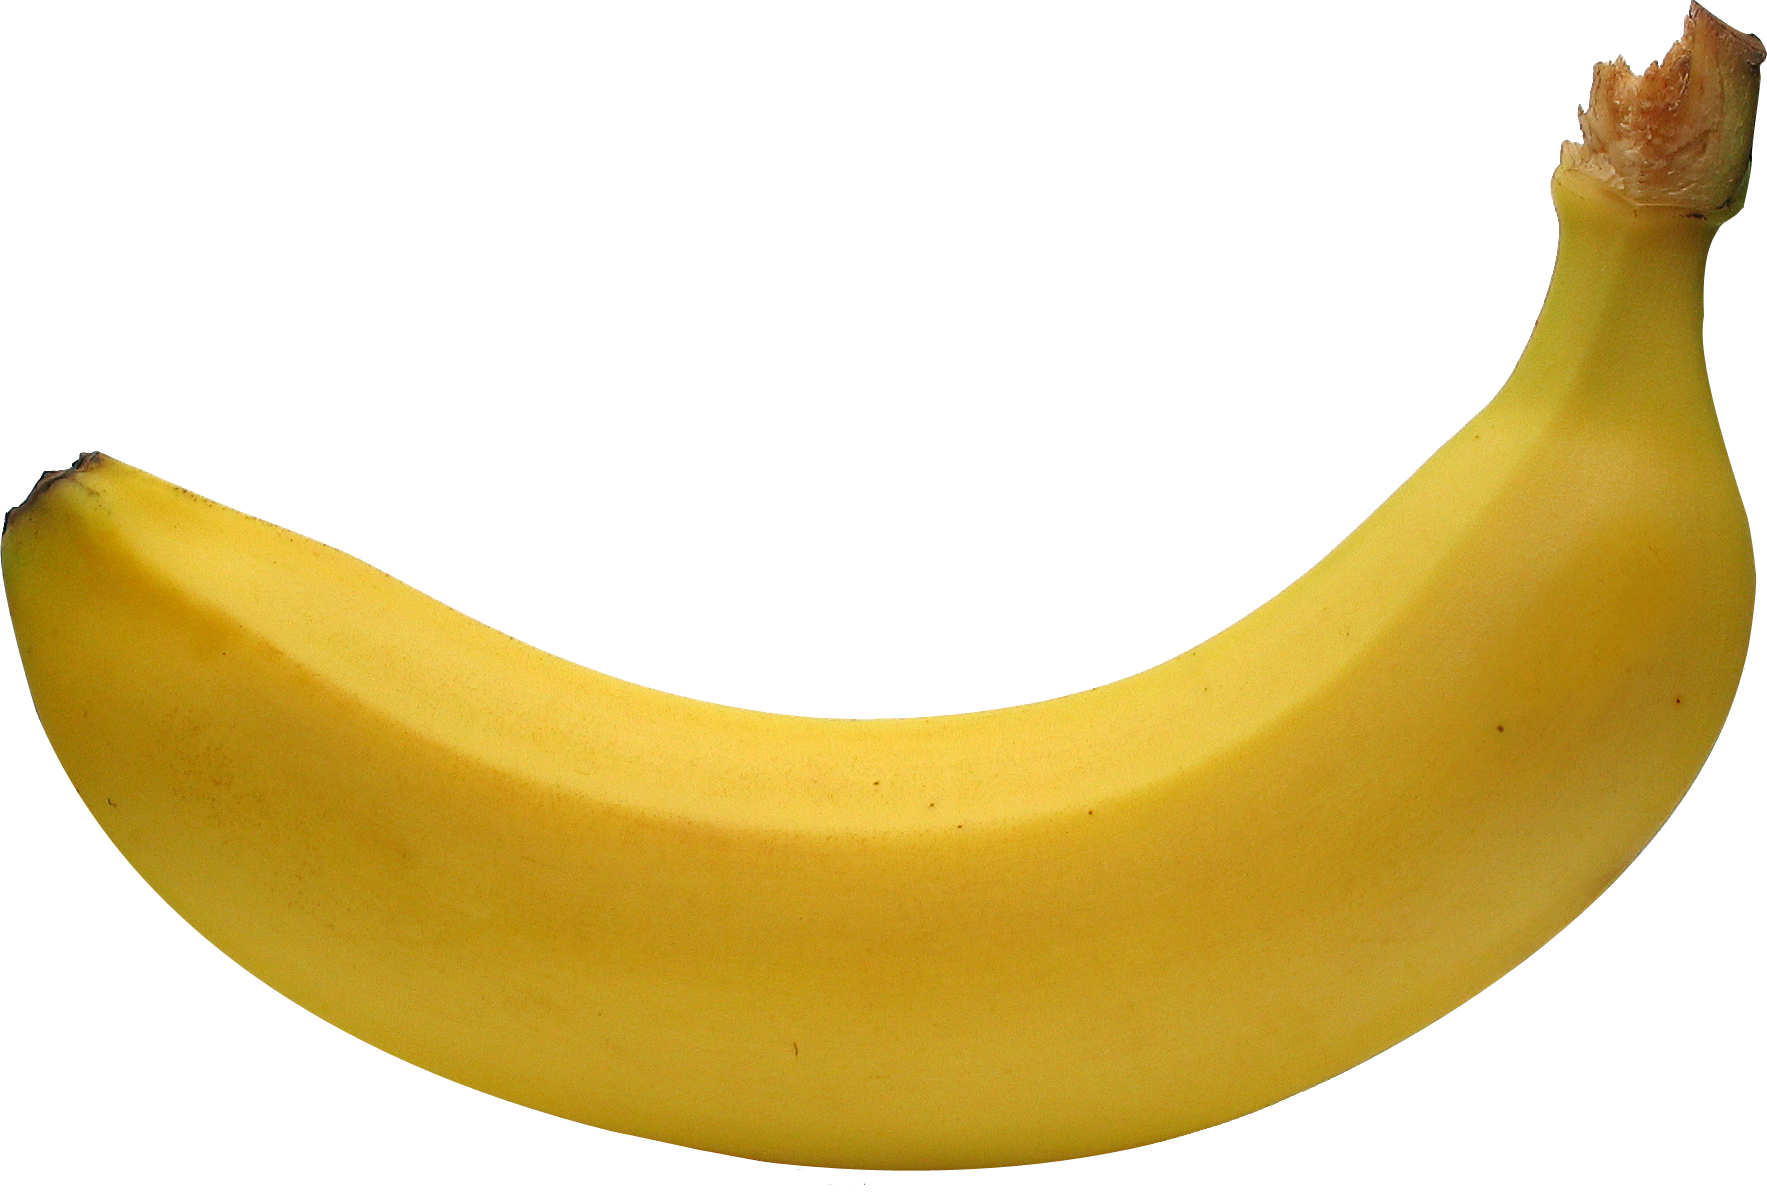 I am a banana. Eating one of me makes you ingest more radiation than Fukushima ever will.